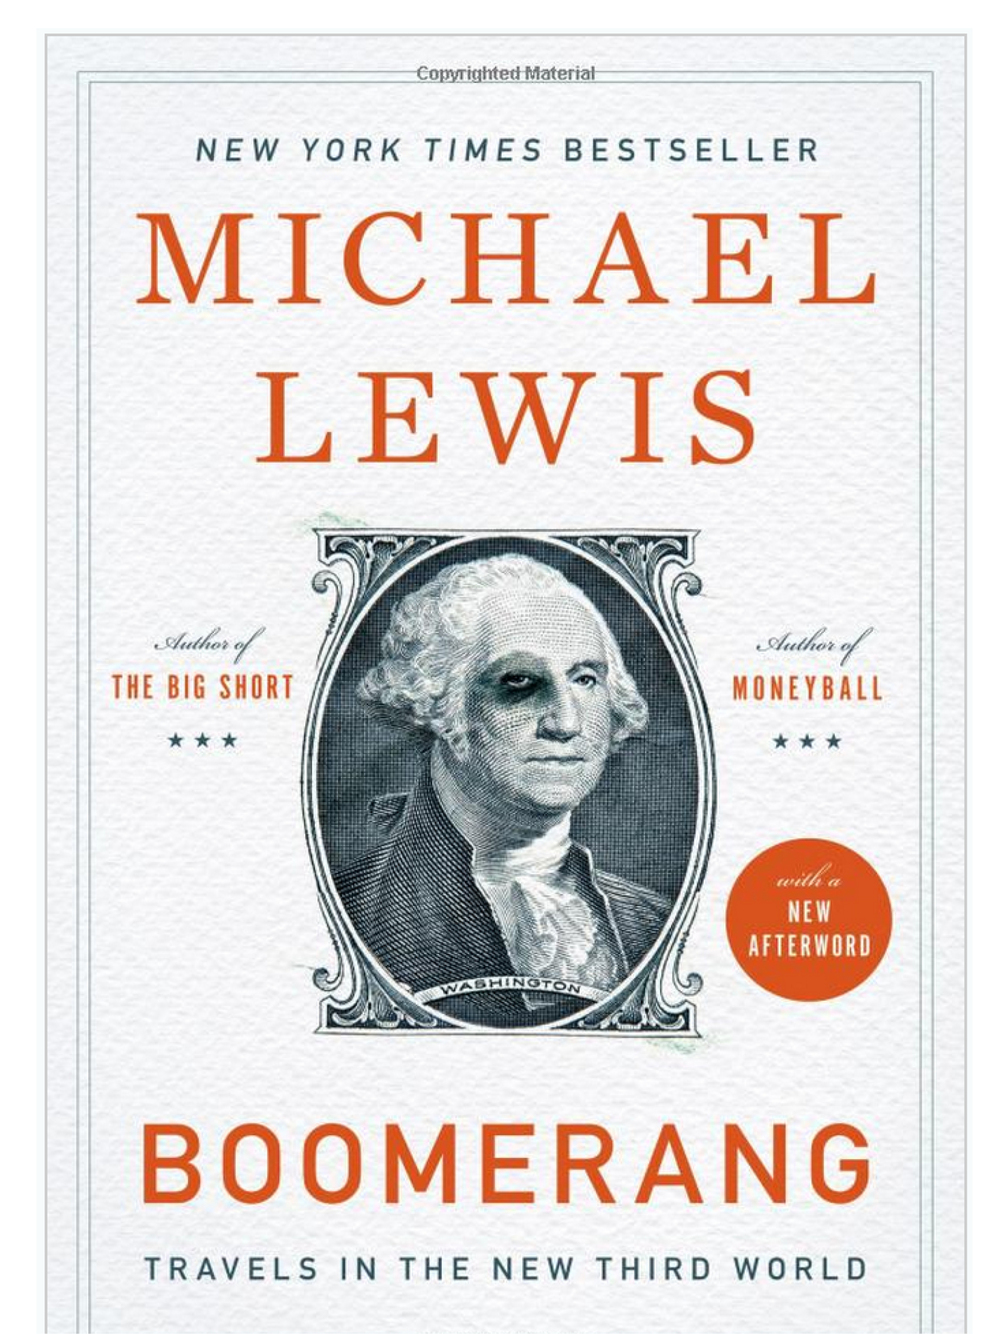 Boomerang: Travels in the New Third World. Michael Lewis  October 2011